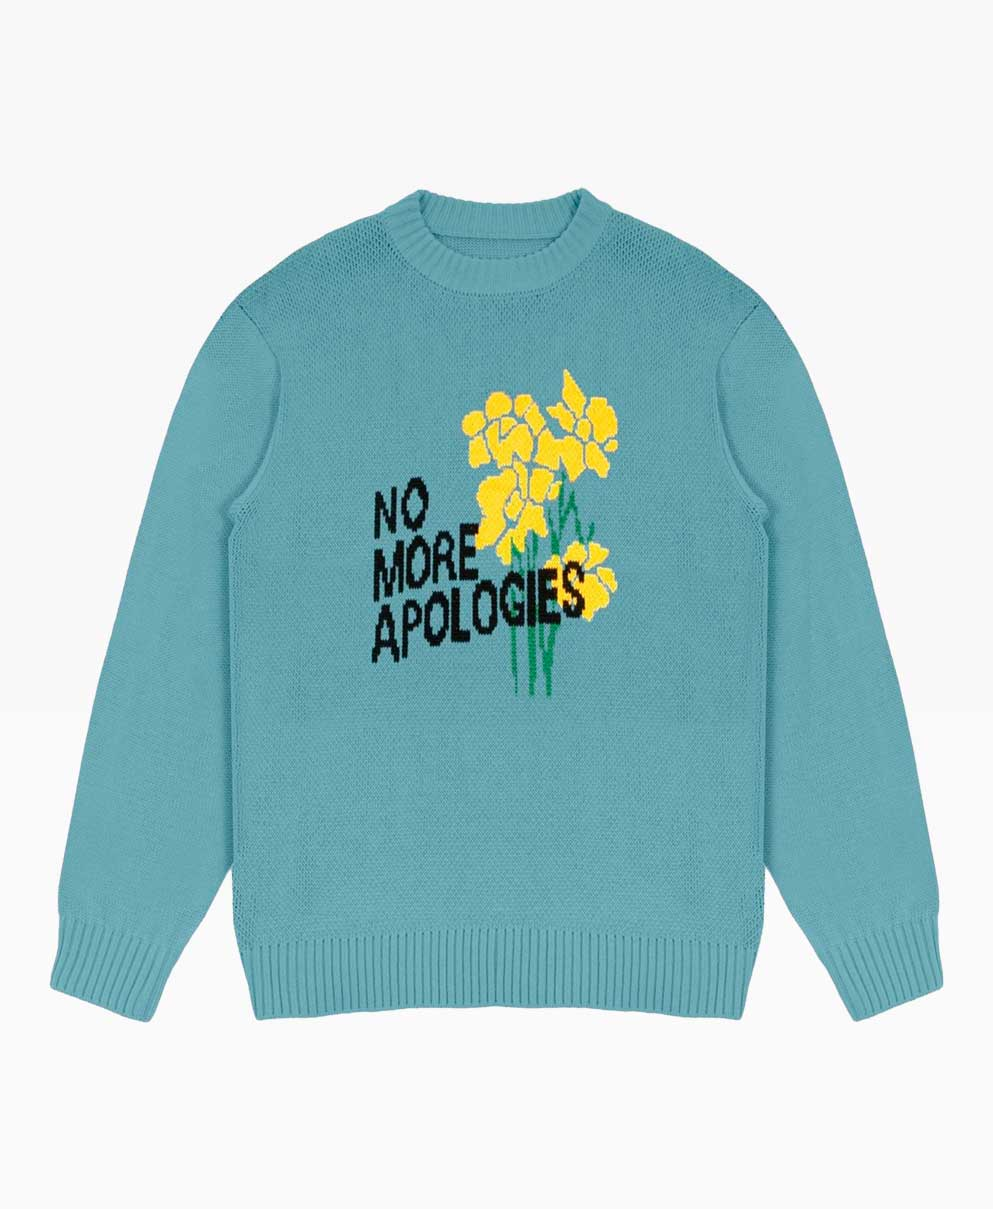 Wasted Apologies Sweater Knit Blue Front